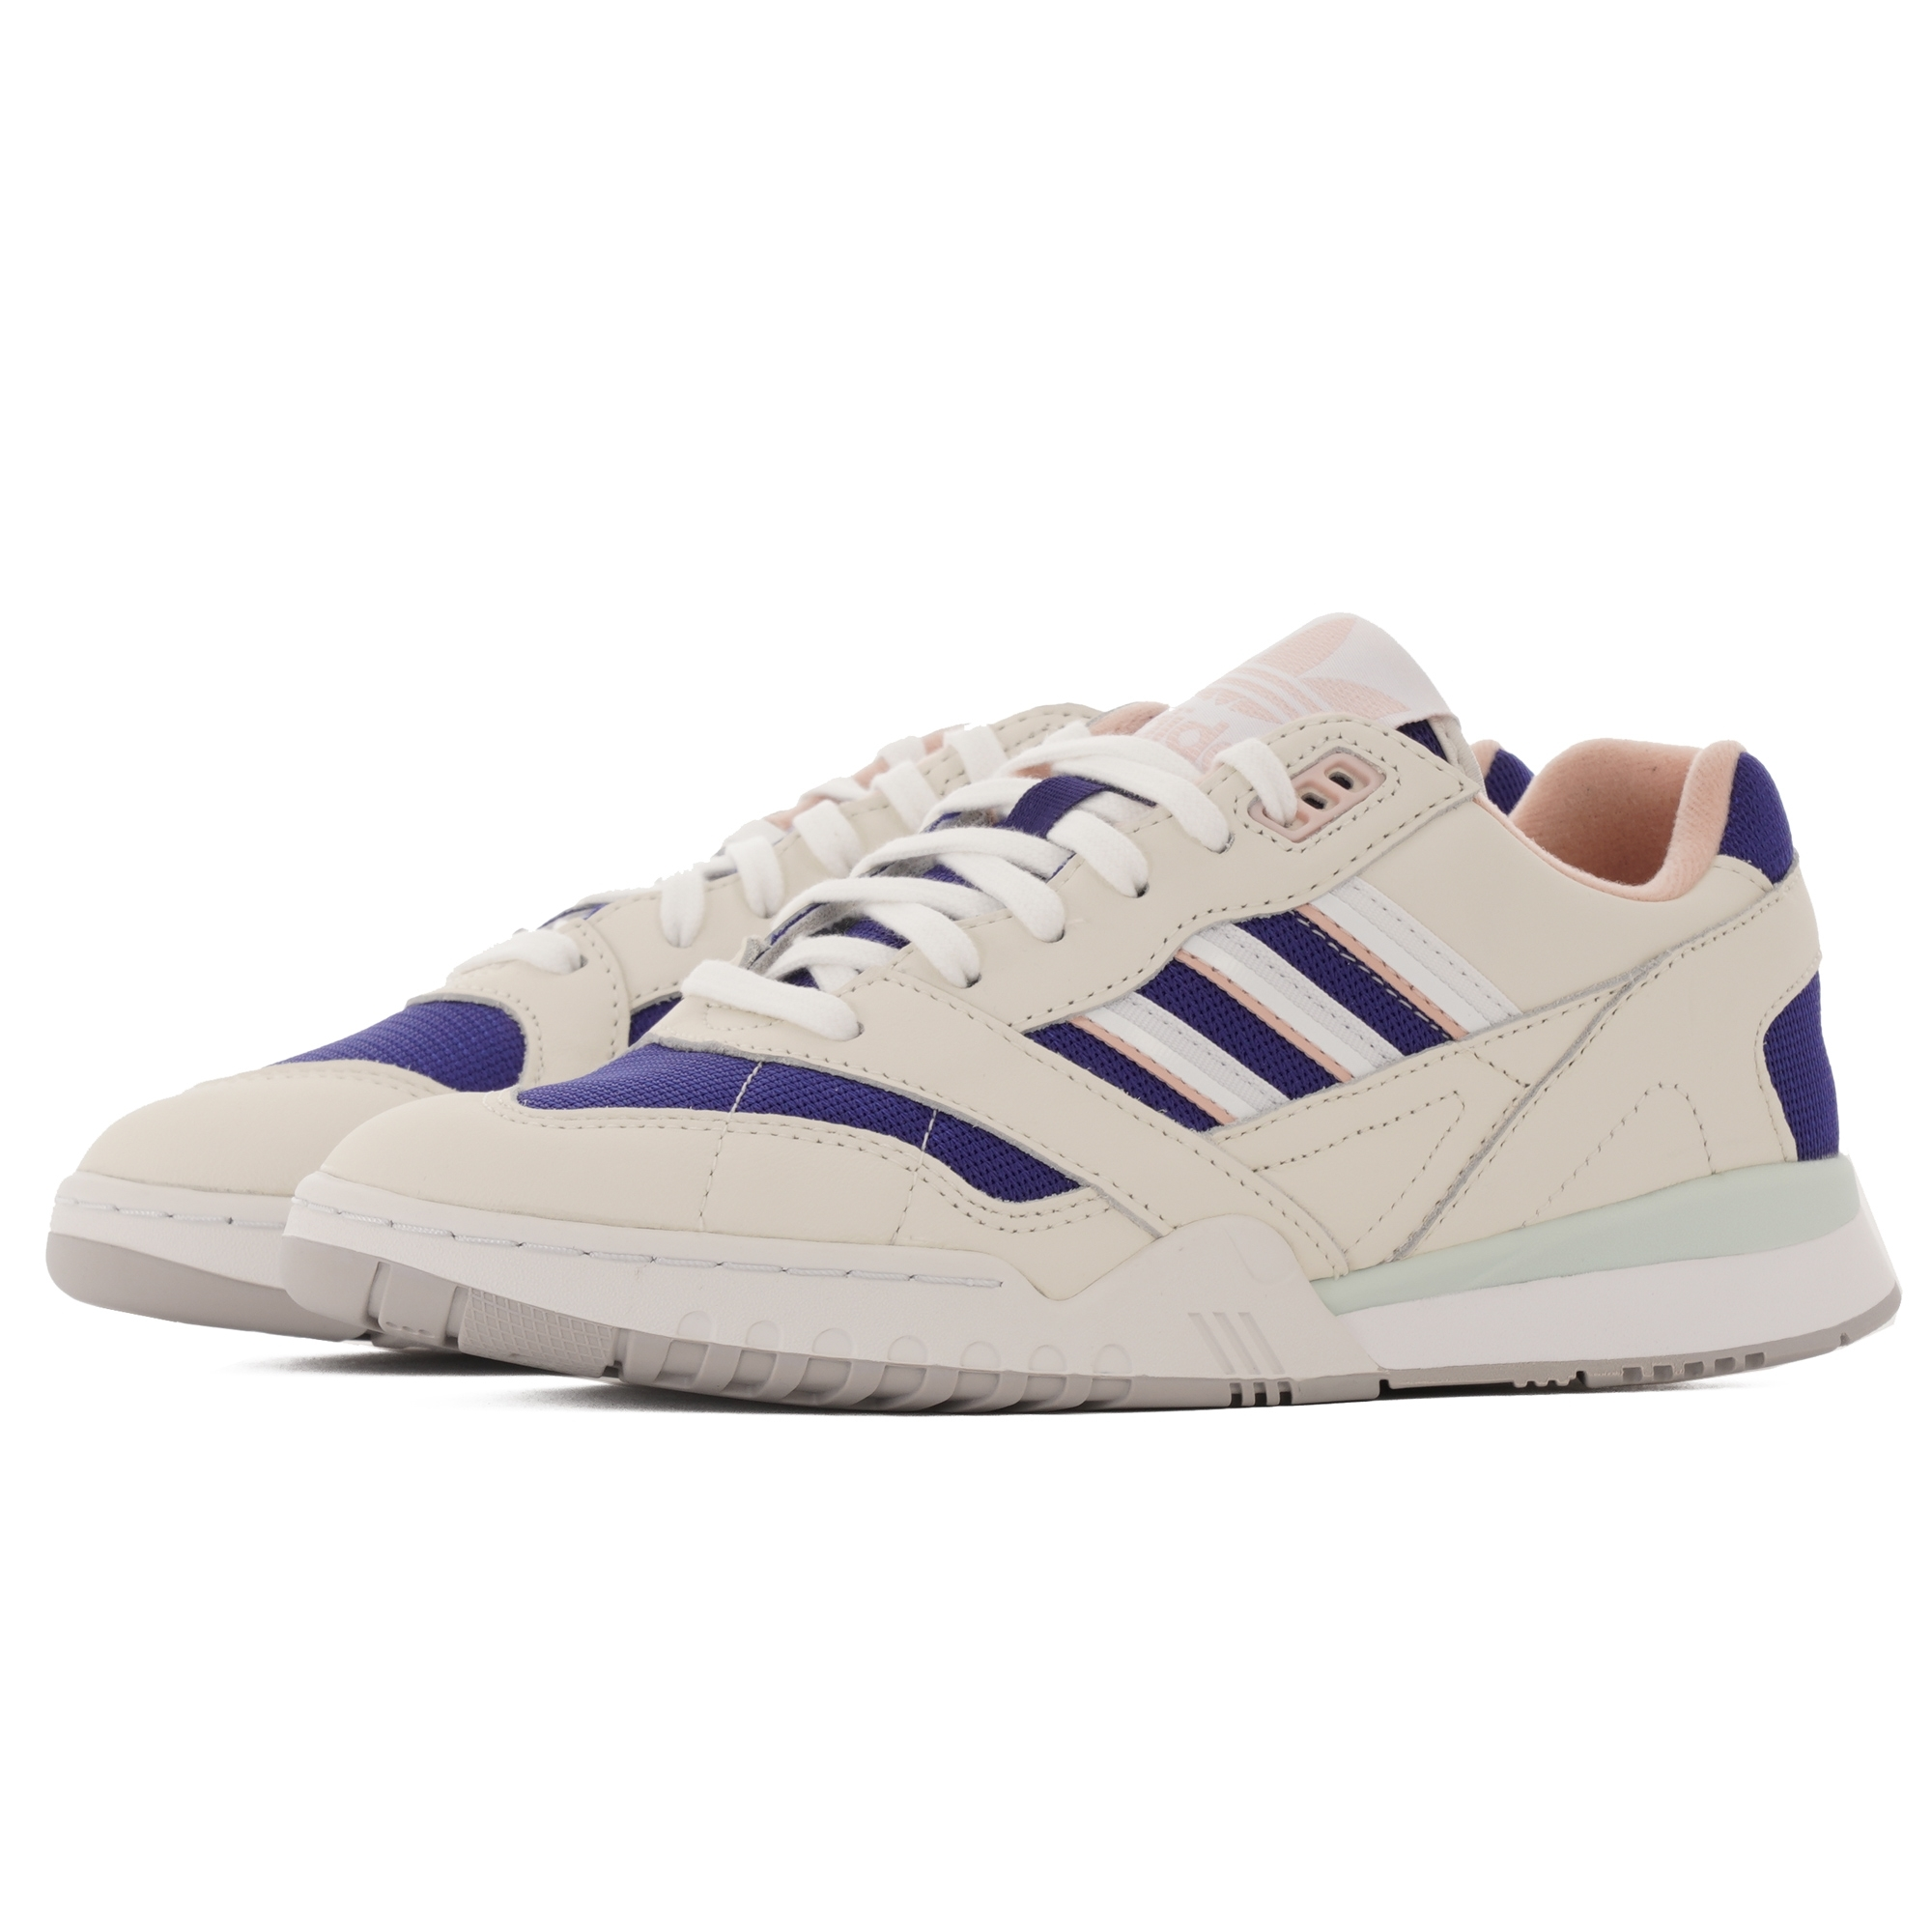 A.R. Trainer Off White, FTW White & Real Purple